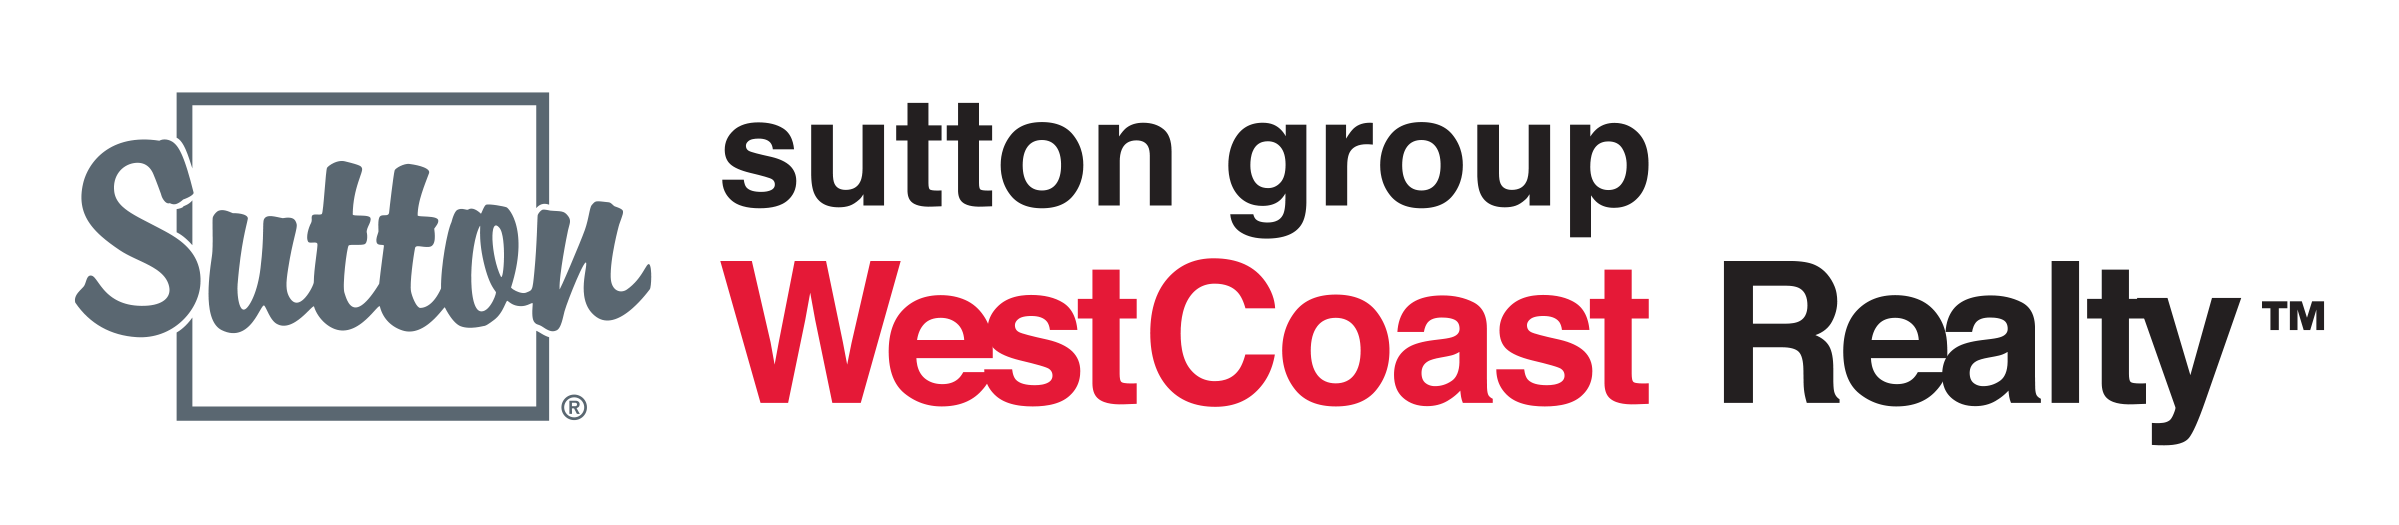 41eac2d0c35b-logo___west_coast_grey_red_black.png